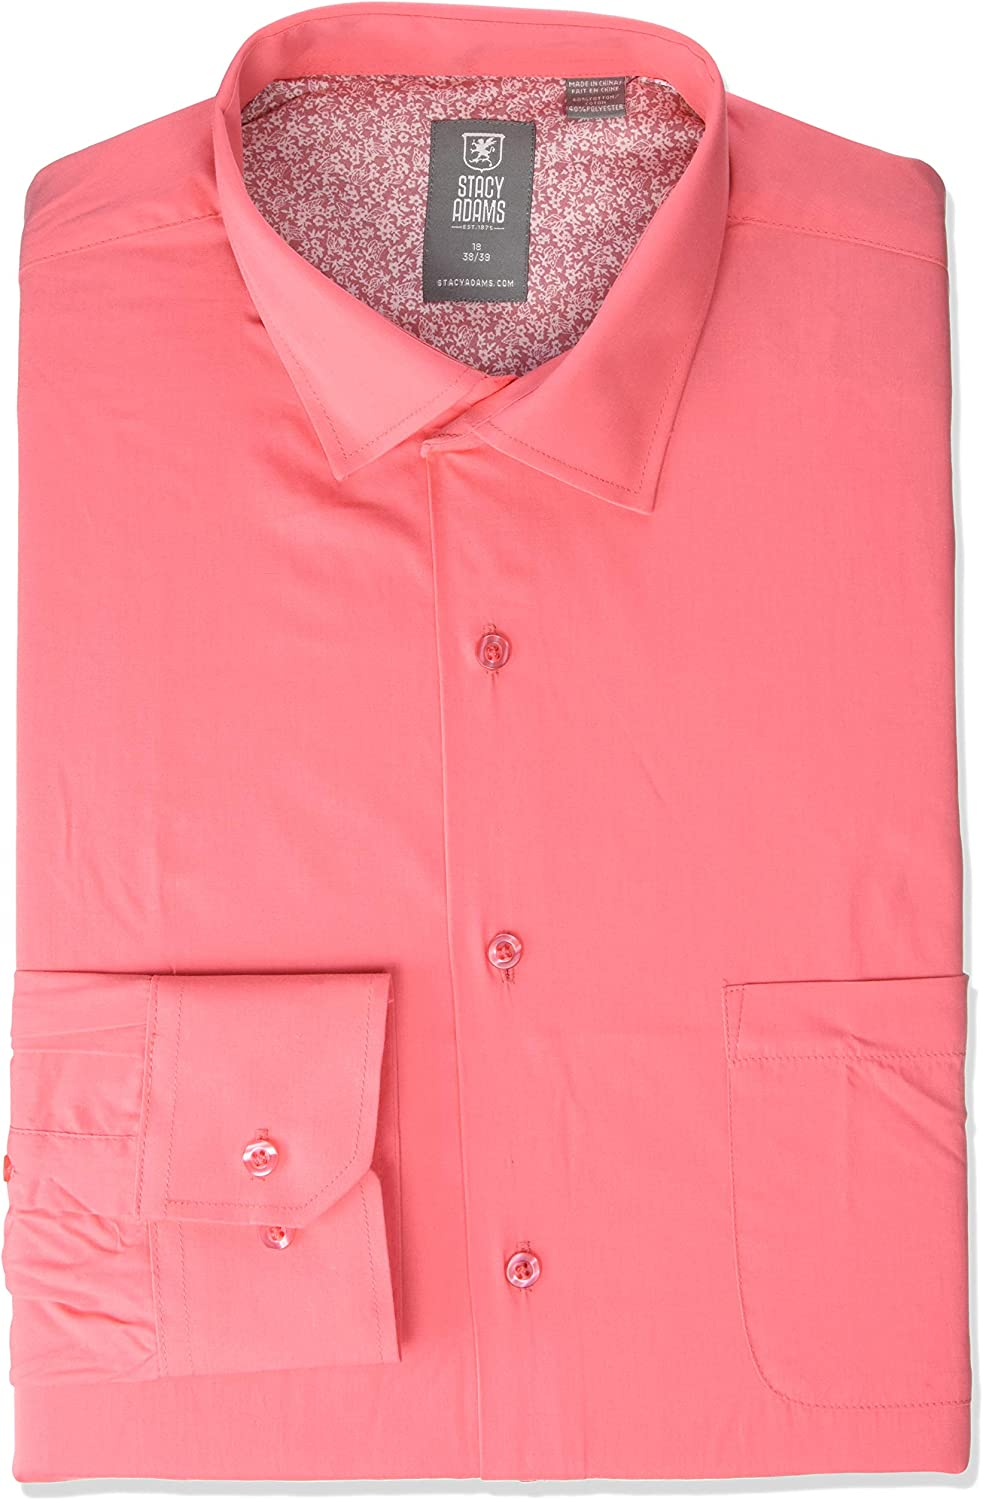 STACY ADAMS Men's Big-Tall 39000 Solid Dress Shirt: Clothing